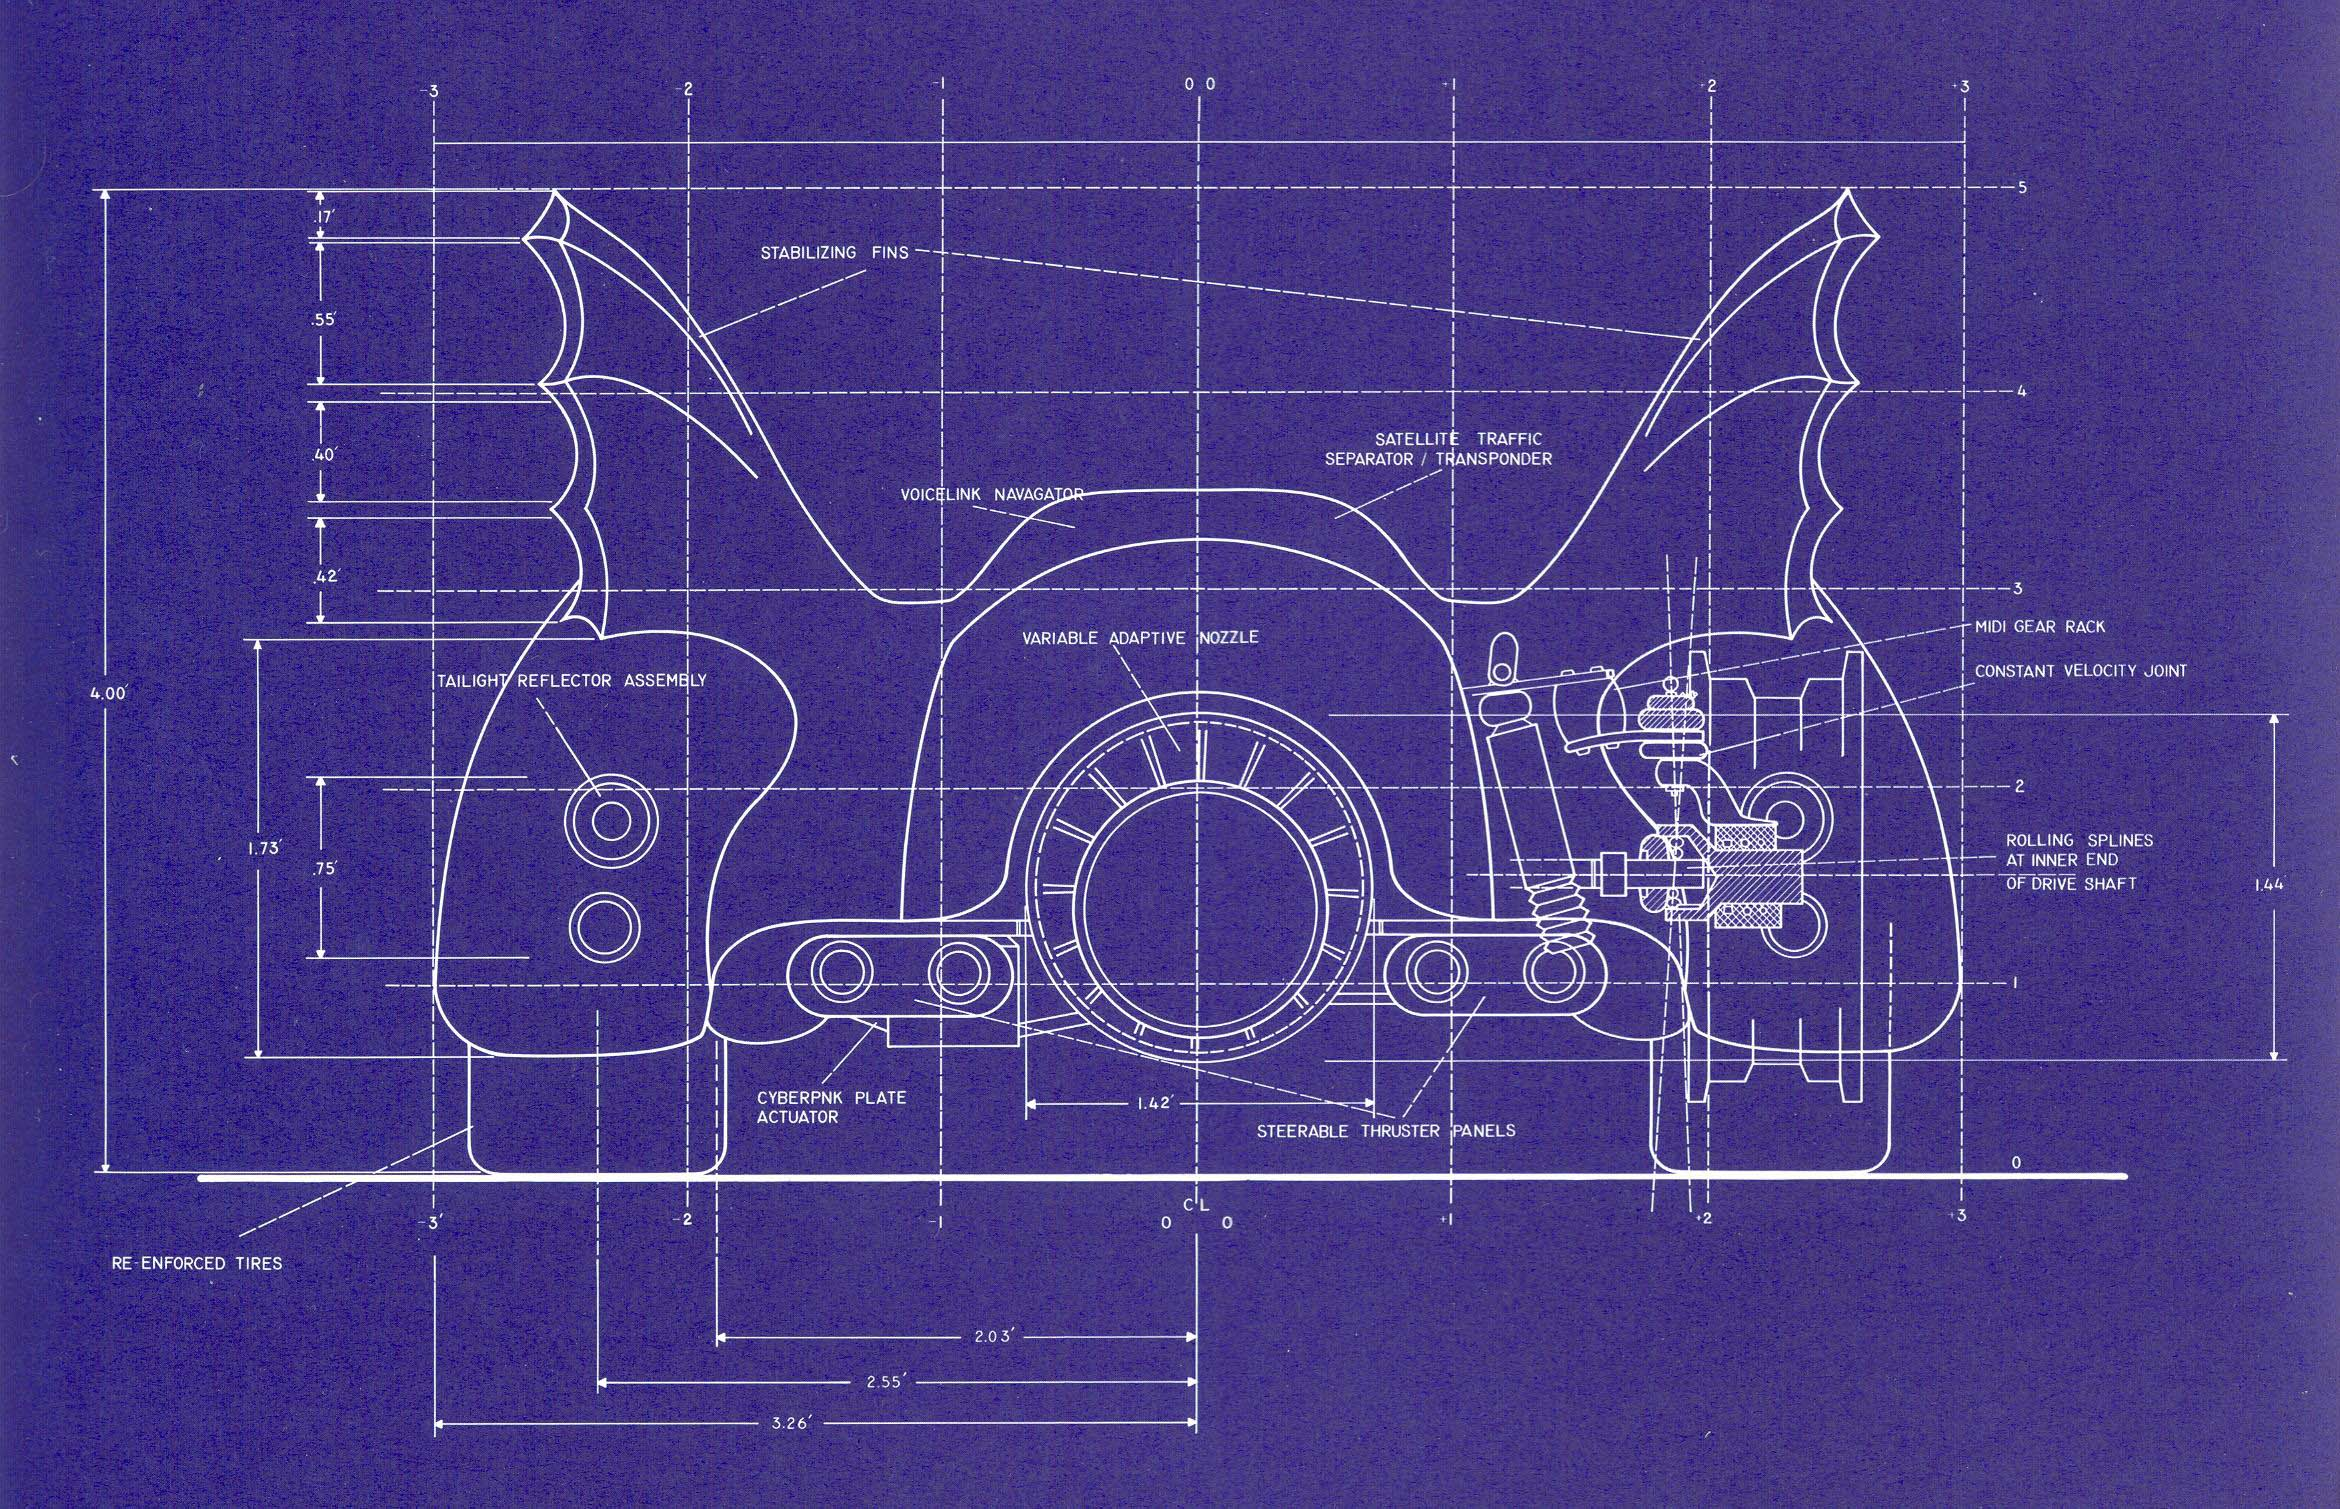 Batman online gallery batmobile blueprints 2 from for Print blueprints online